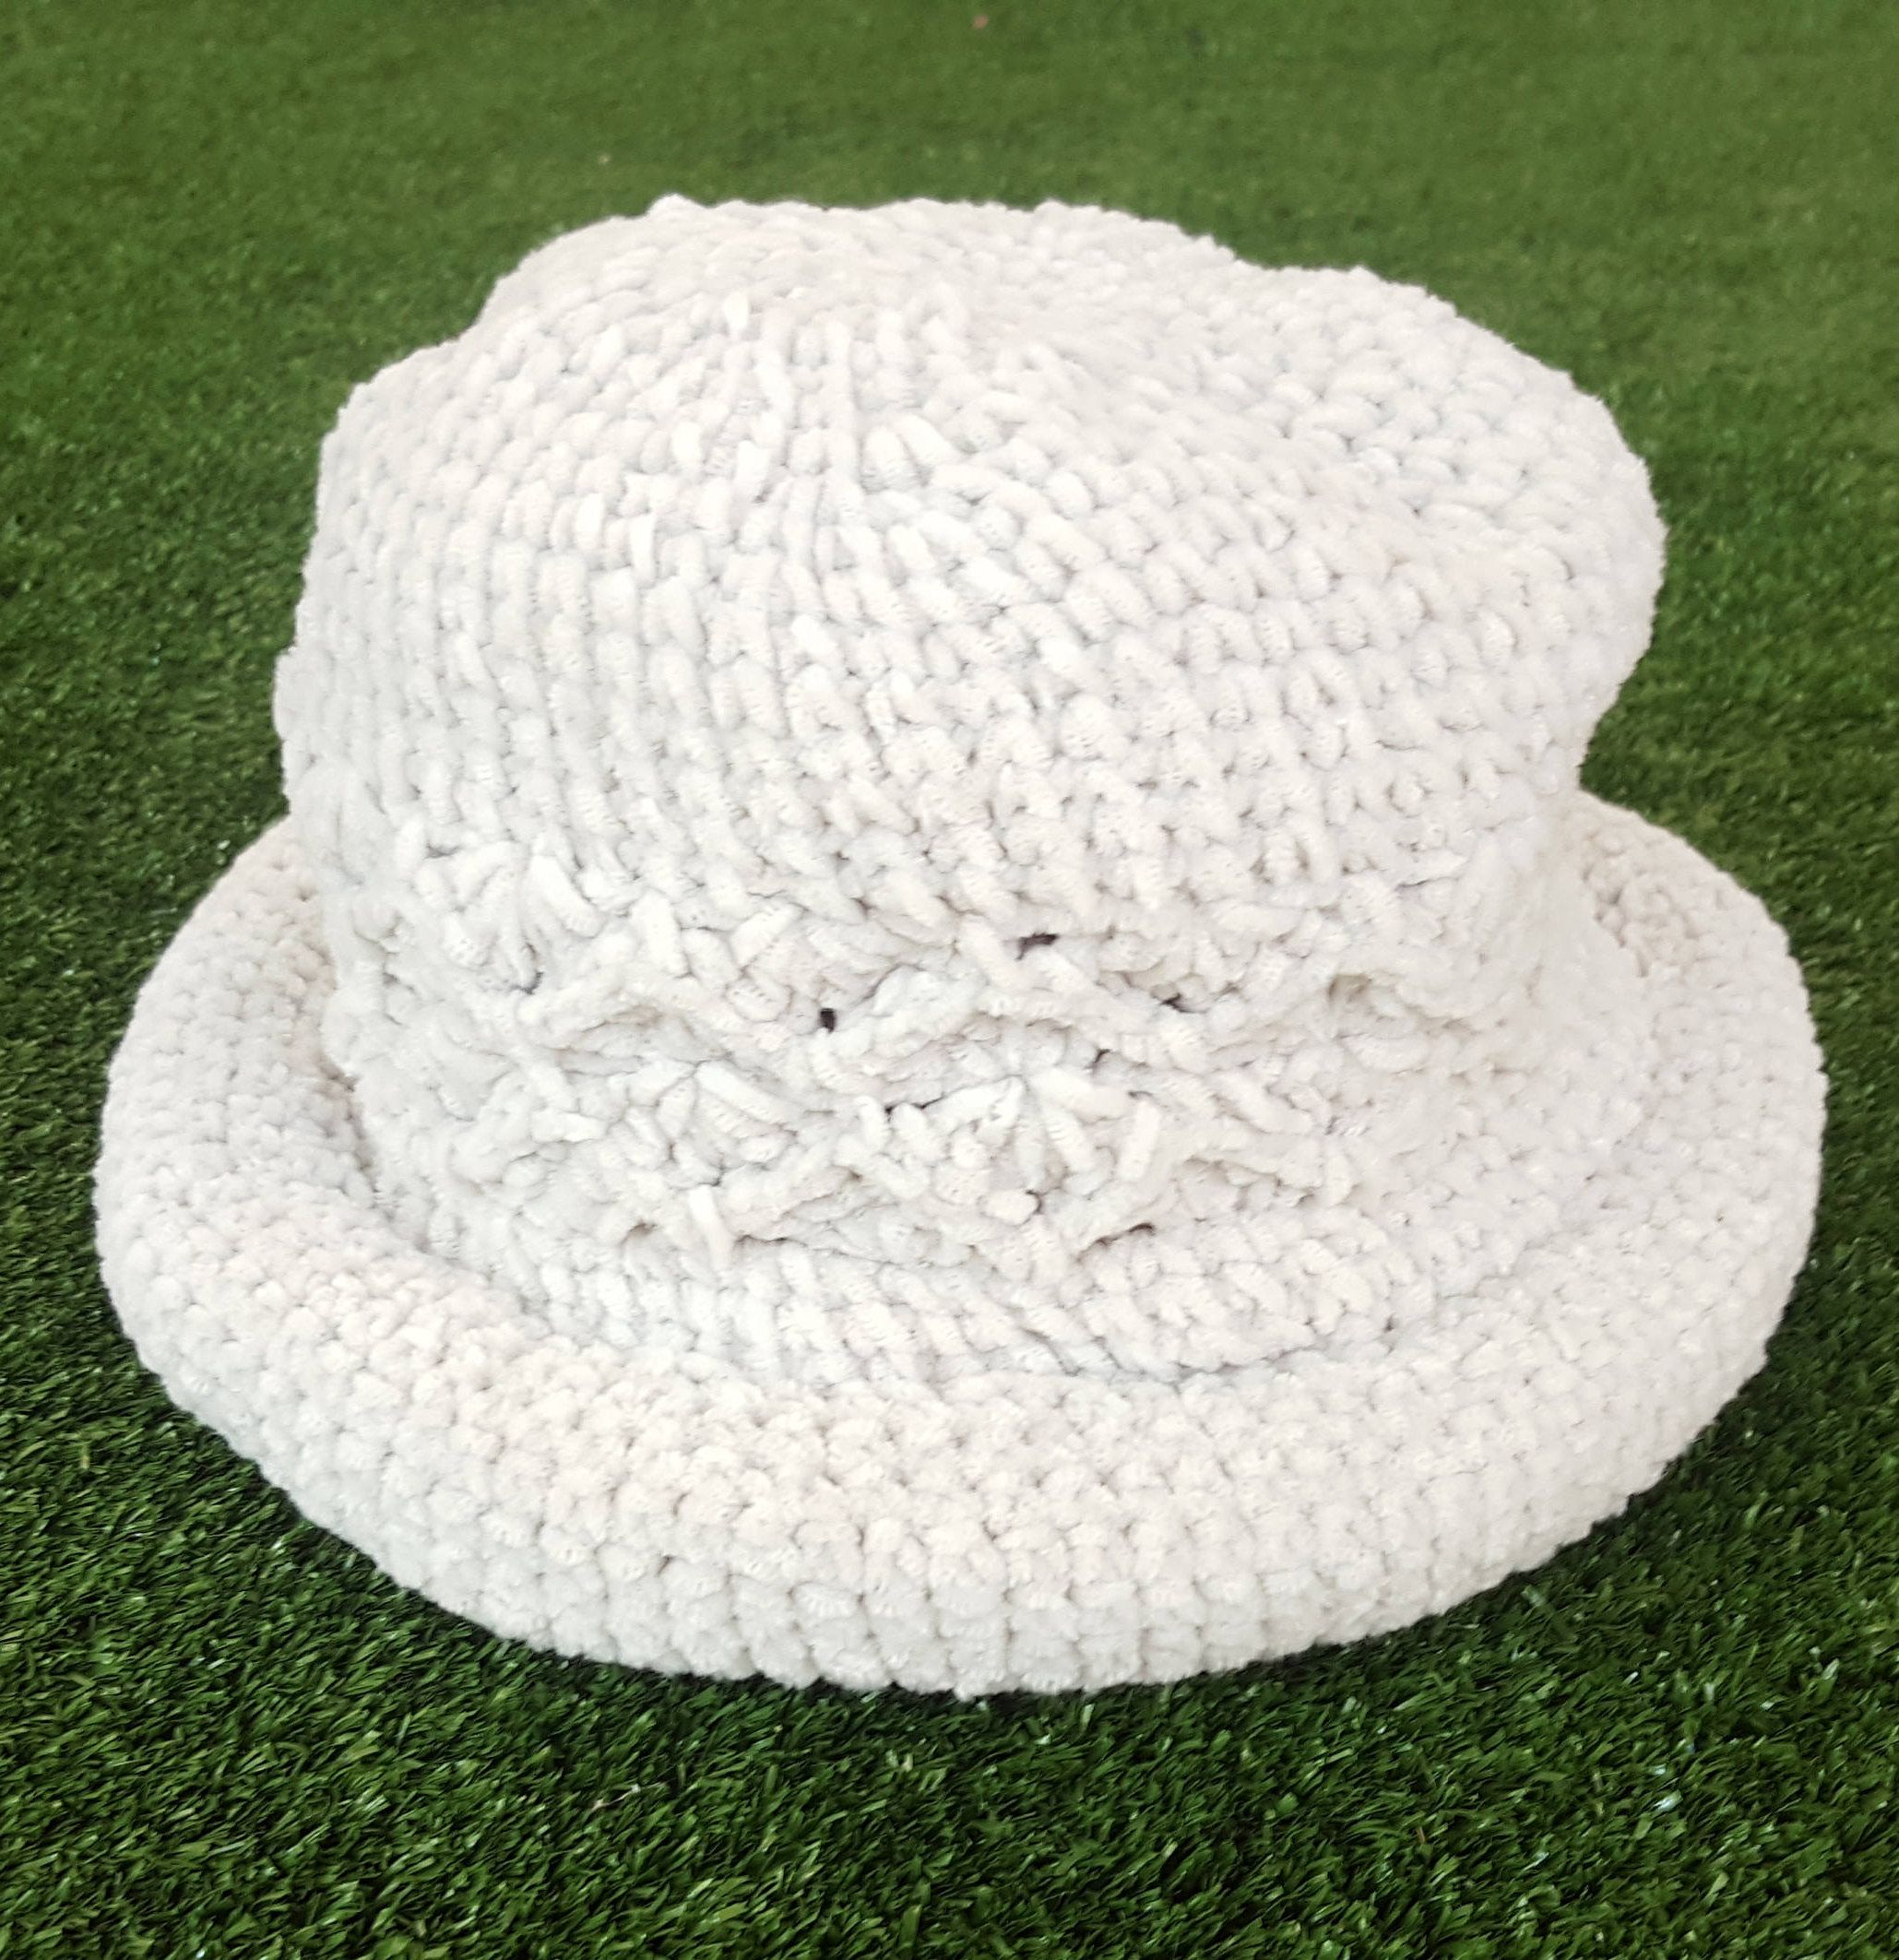 b006e04cb53 Vintage 90 s Grey Pattern Bucket Hat   Floppy Crocheted   Dad Hat   Festival  Gear   Vintage   Gray   by NEONPOINT on Etsy